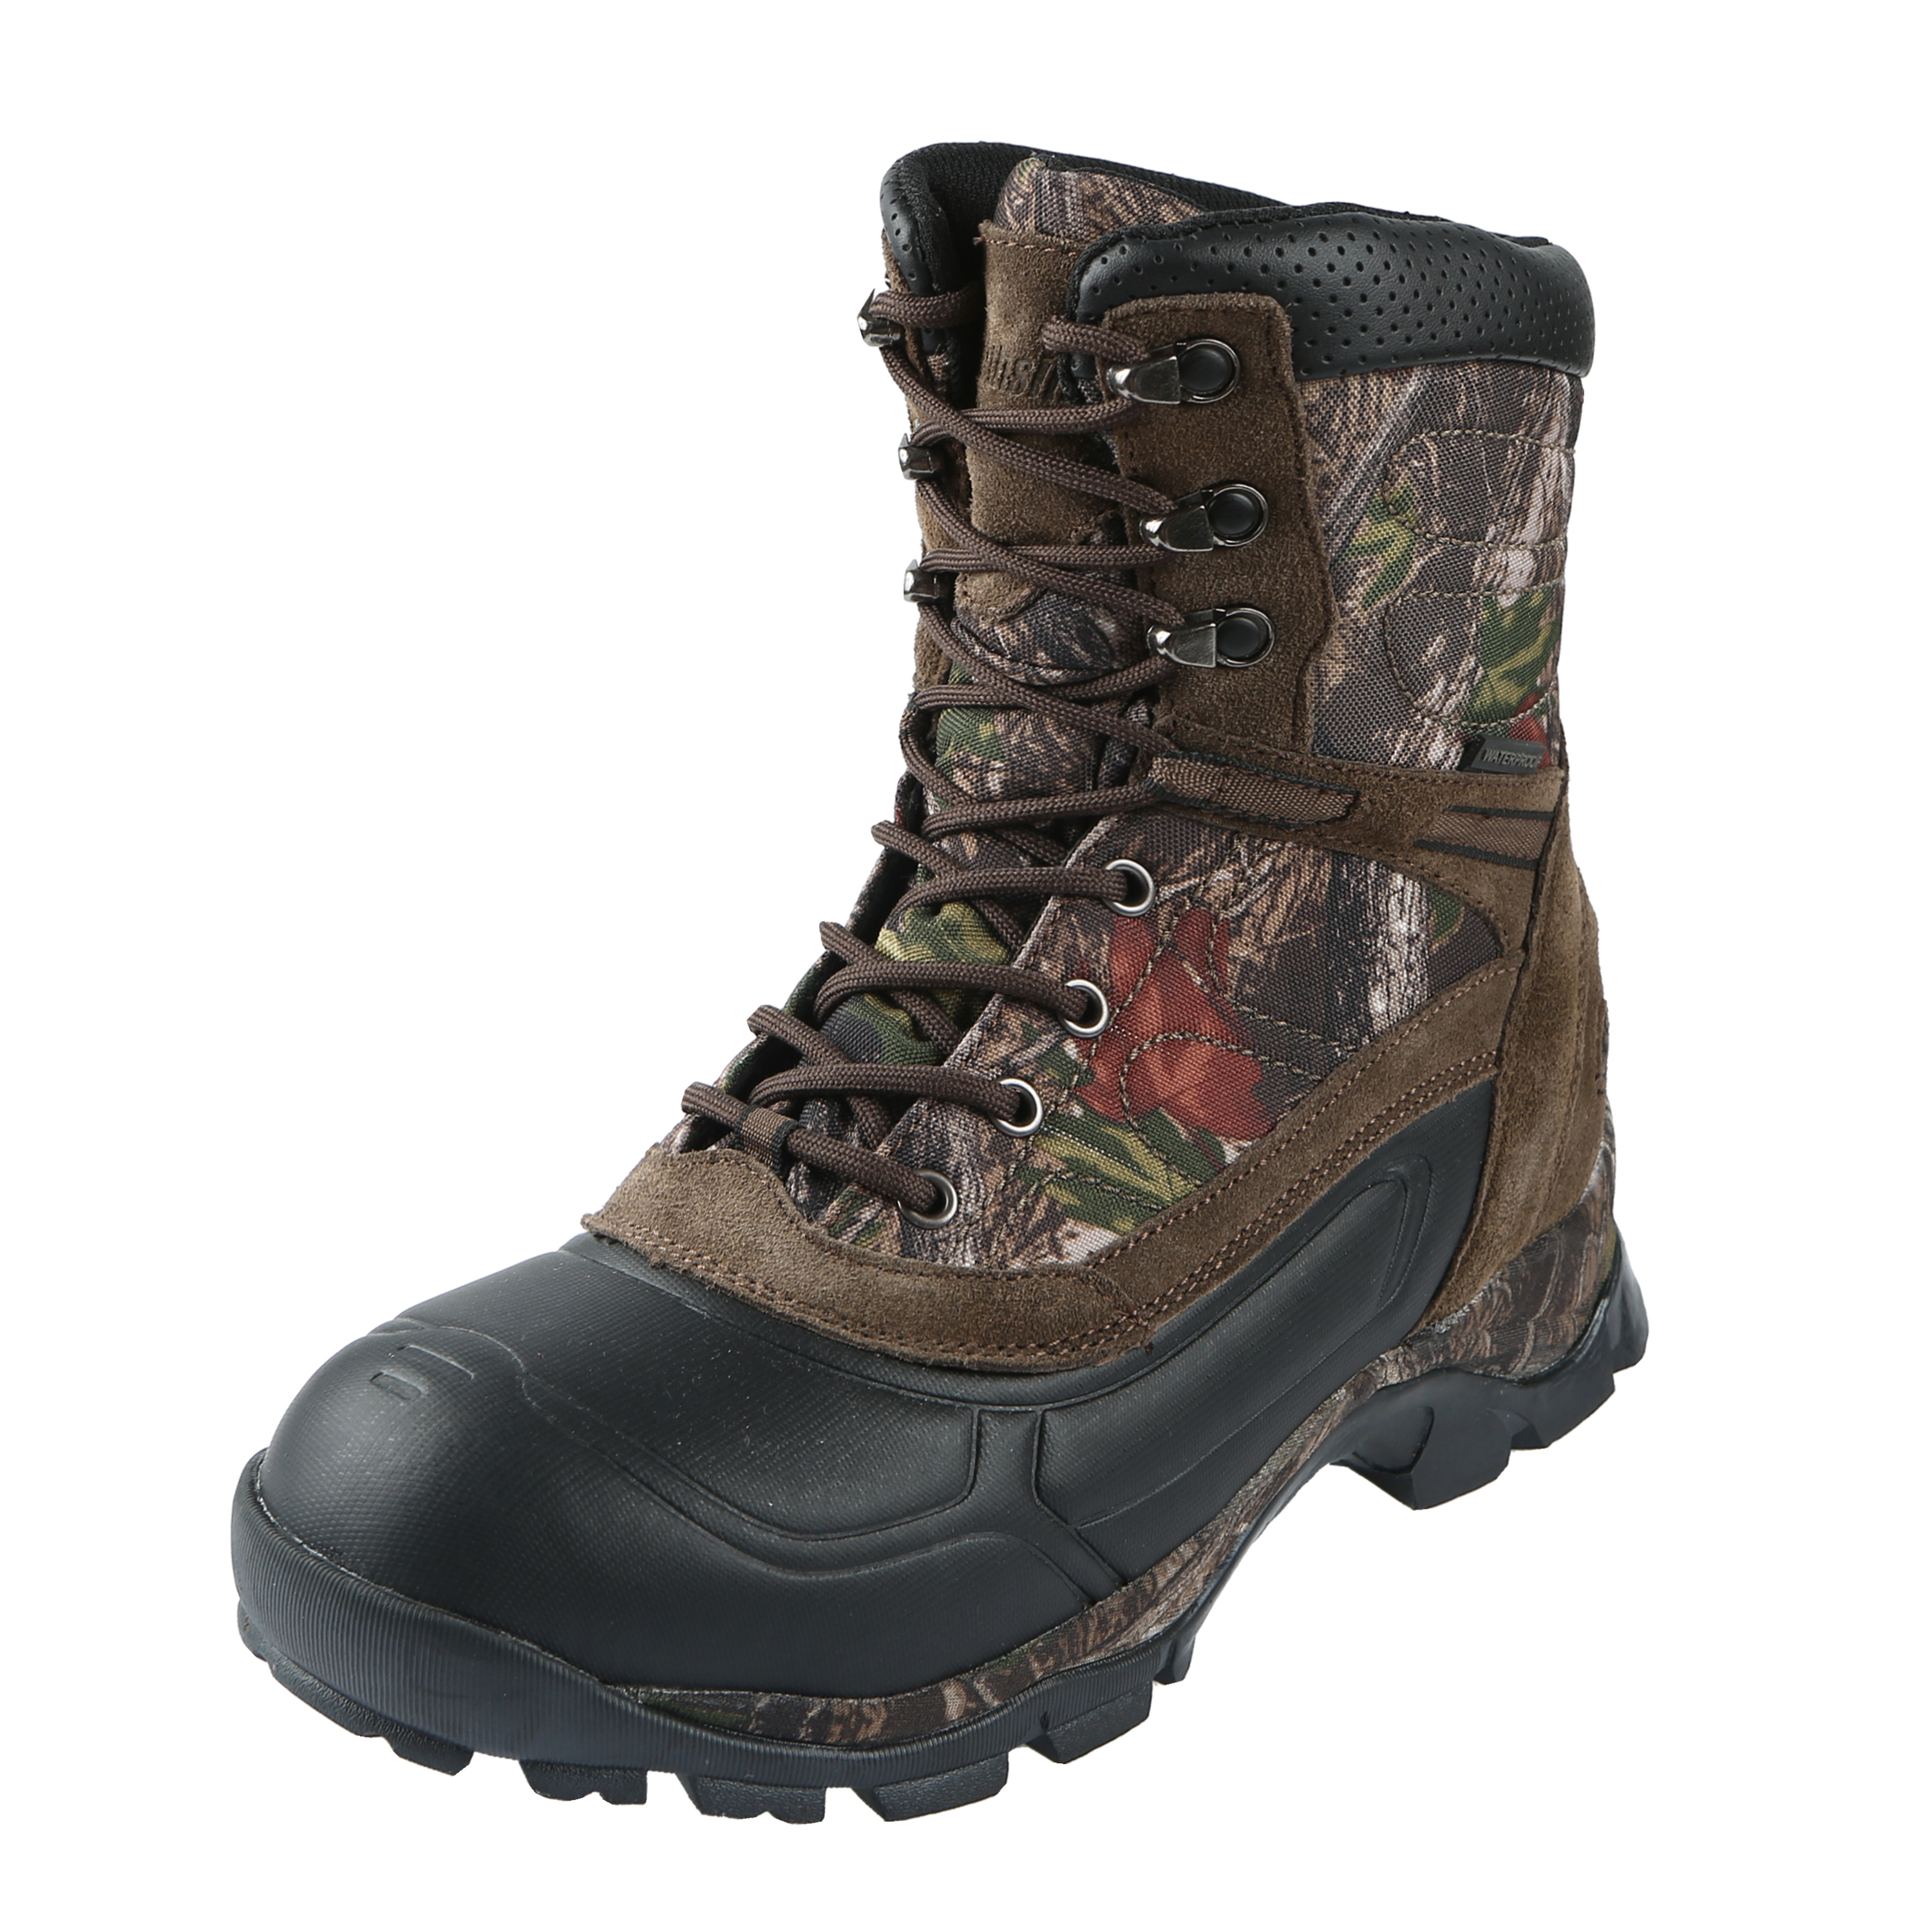 Northside Mens Banshee Waterproof 600 Gram Insulated Leather Hunting Snow Boot